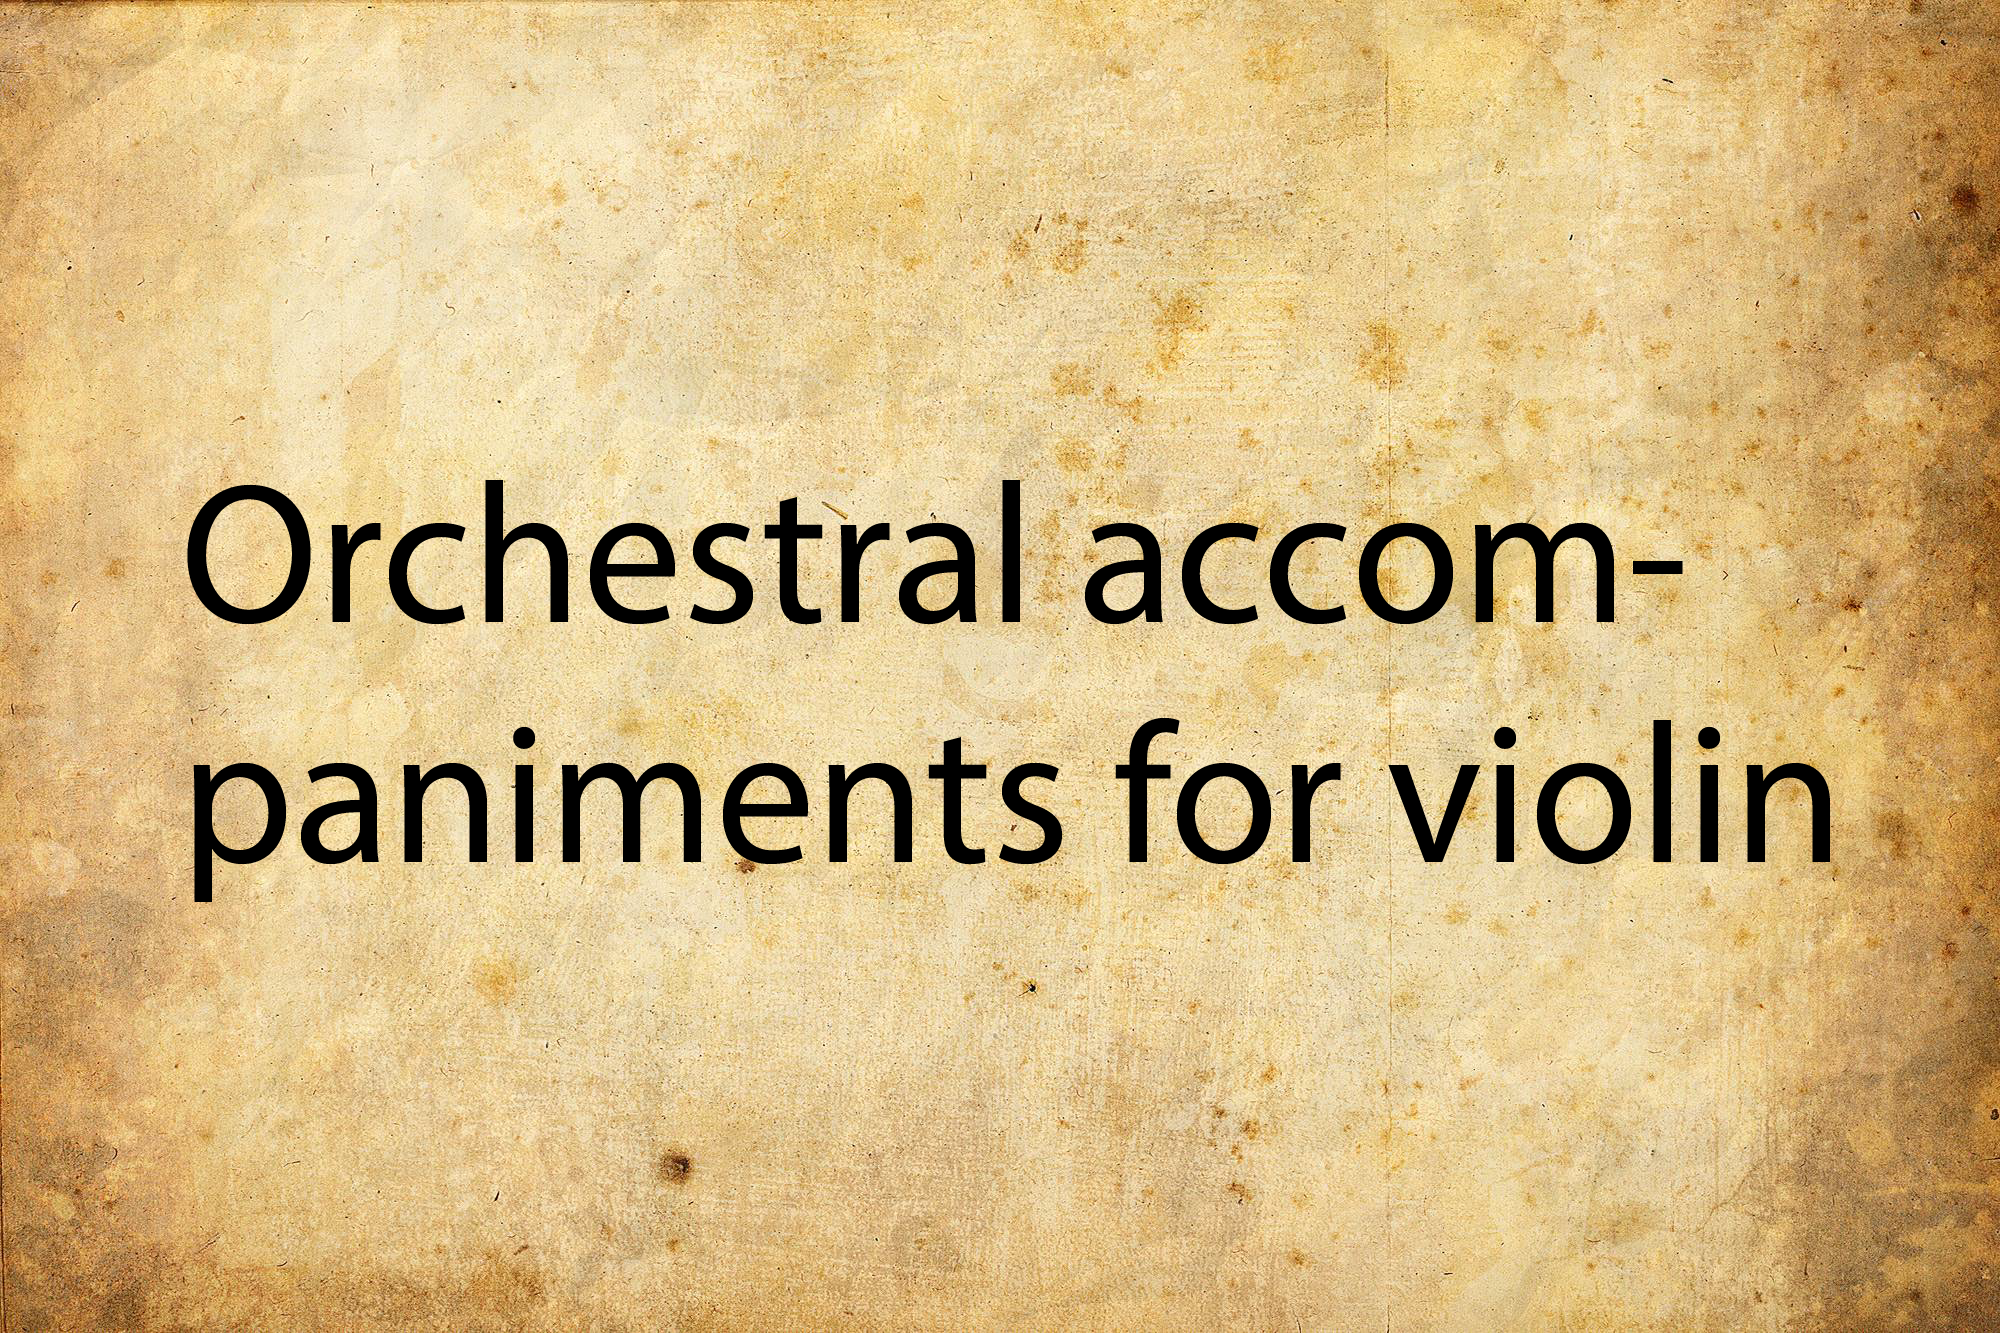 Orchestral accompaniments